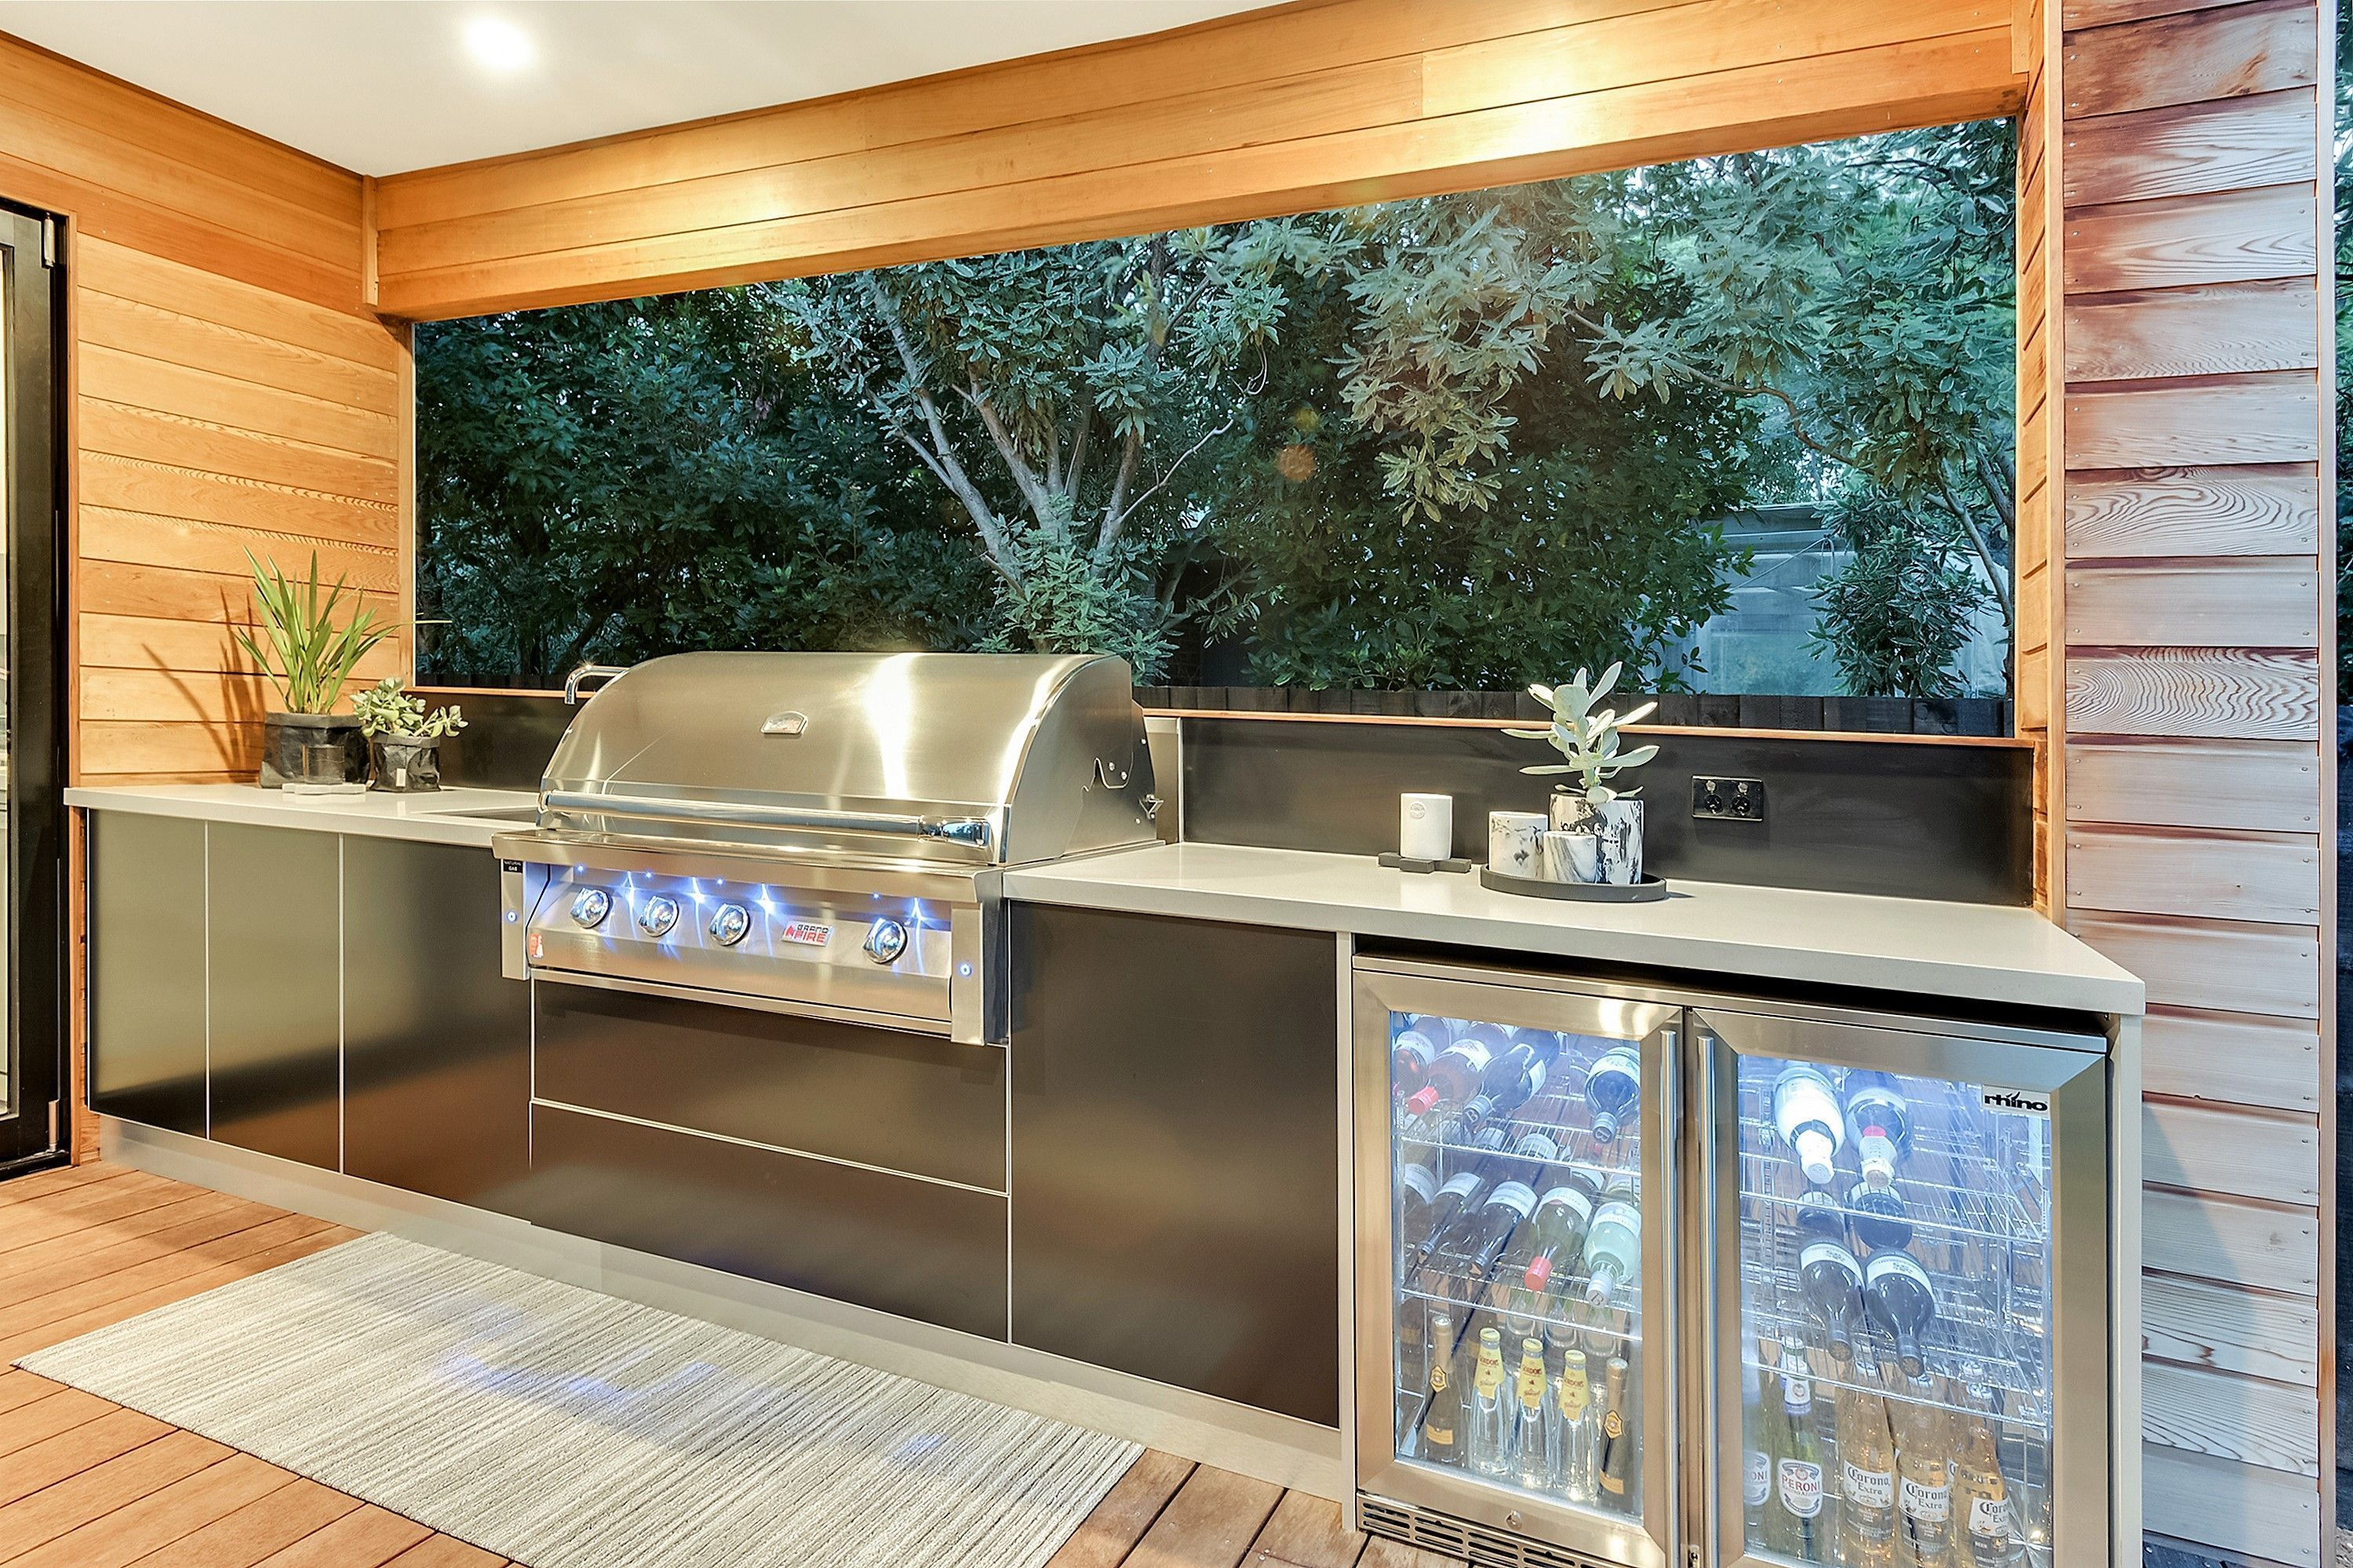 Superb Enticing Idea To Outside Kitchen Outdoor Bbq Kitchen Outdoor Kitchen Design Outdoor Kitchen Cabinets